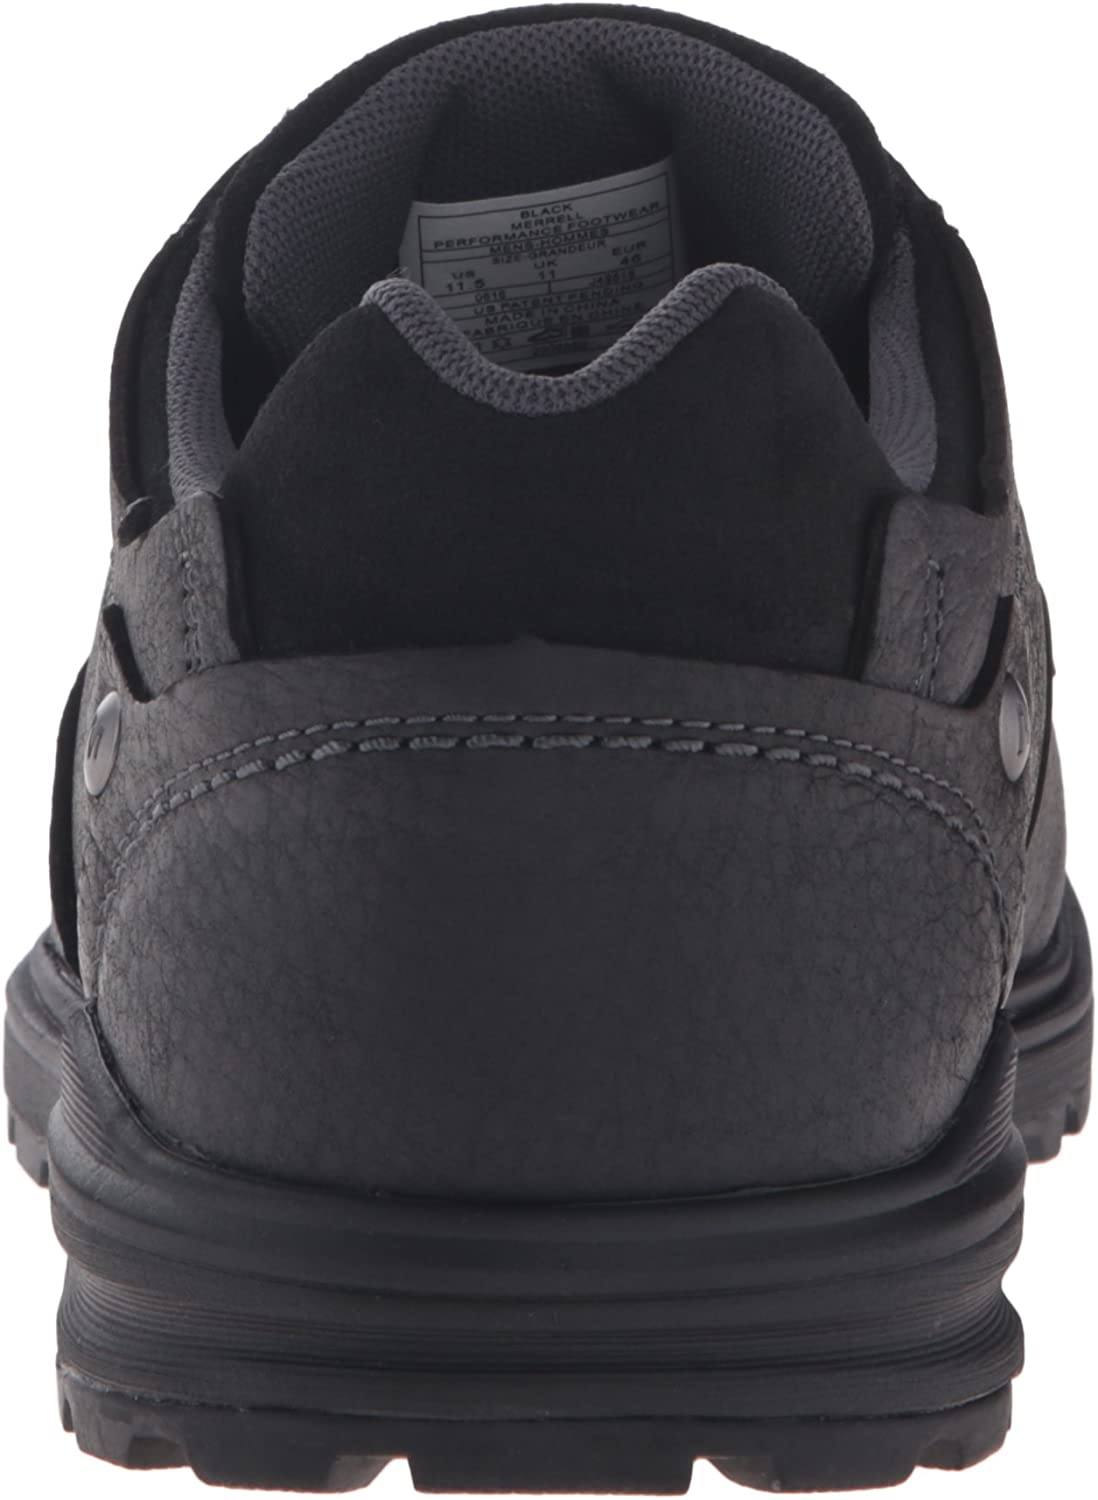 Merrell Mens Brevard Lace Oxford Shoe